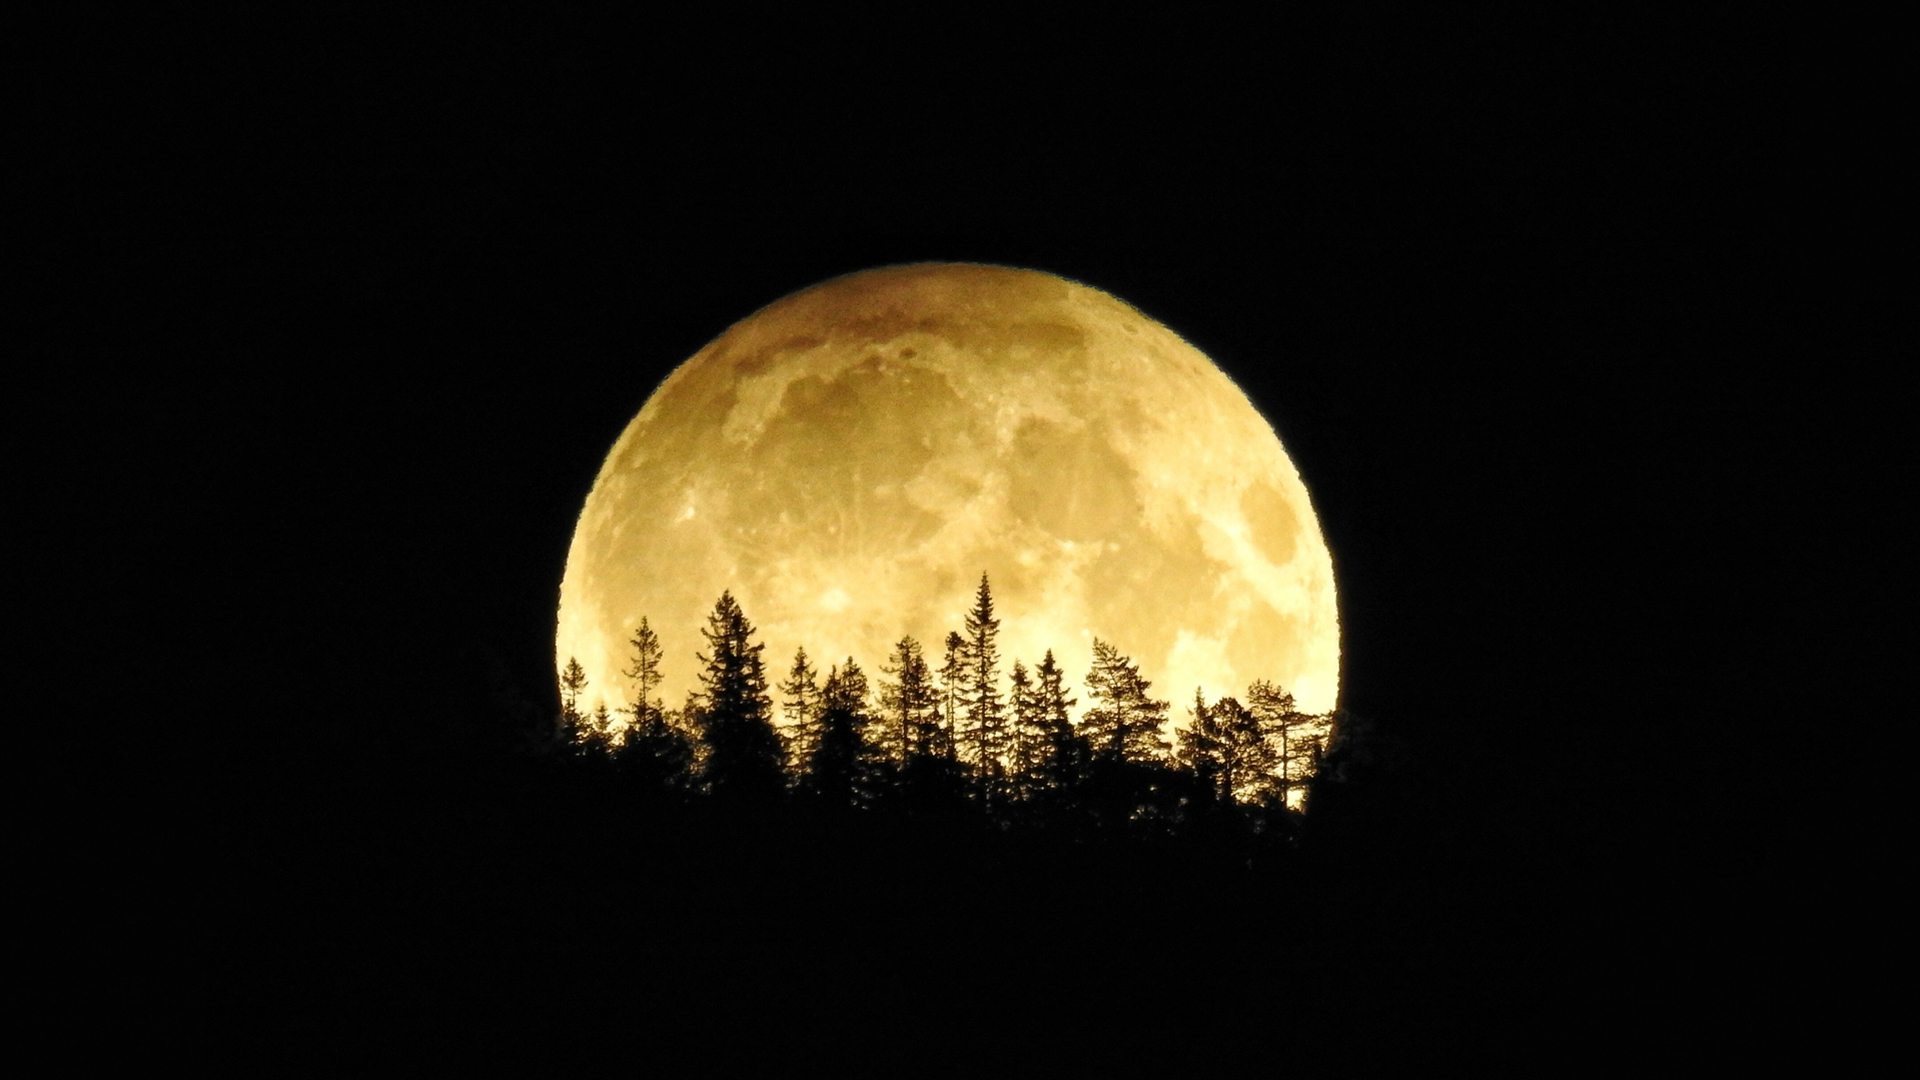 This harvest moon in 2016 is likely far bigger than the one most people will see the night of September 13. This year's harvest moon will appear 14% smaller than a typical full moon because it occurs when the moon is farthest from the Earth. (Credit: Lisbett Lindstad/CNN iReport)